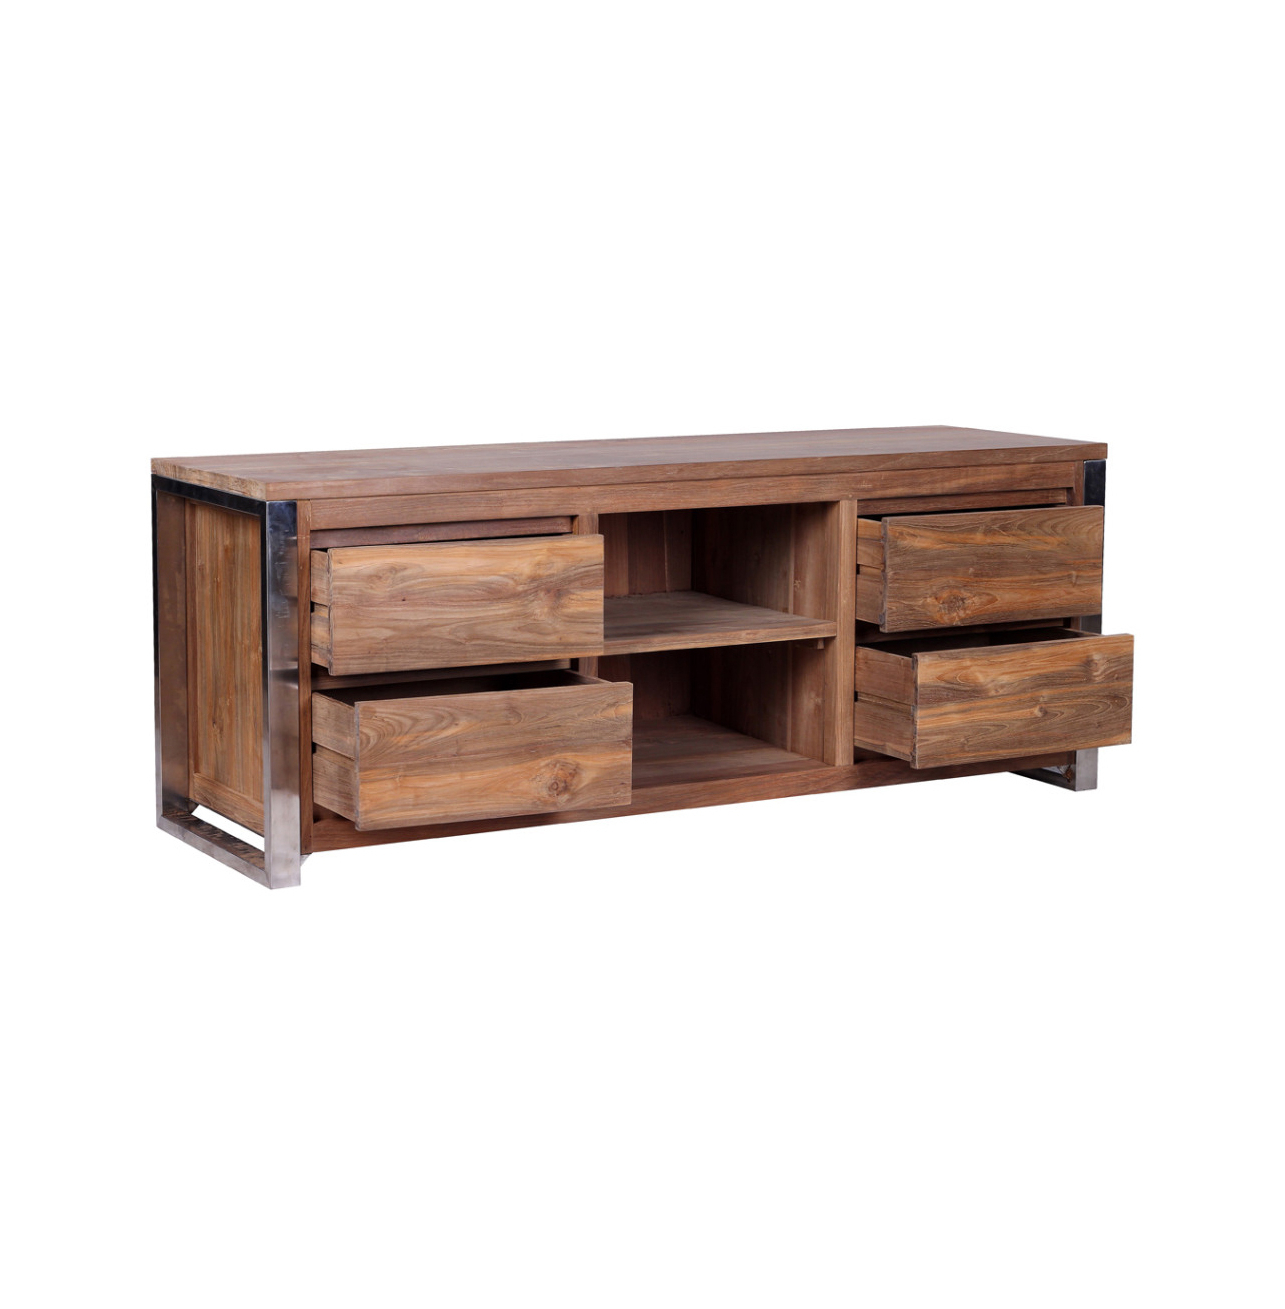 Most Recently Released Metal And Wood Tv Stands Pertaining To Rarem Reclaimed Wood Tv Stand – Reclaimed Teak And Stainless Steel (Gallery 2 of 20)